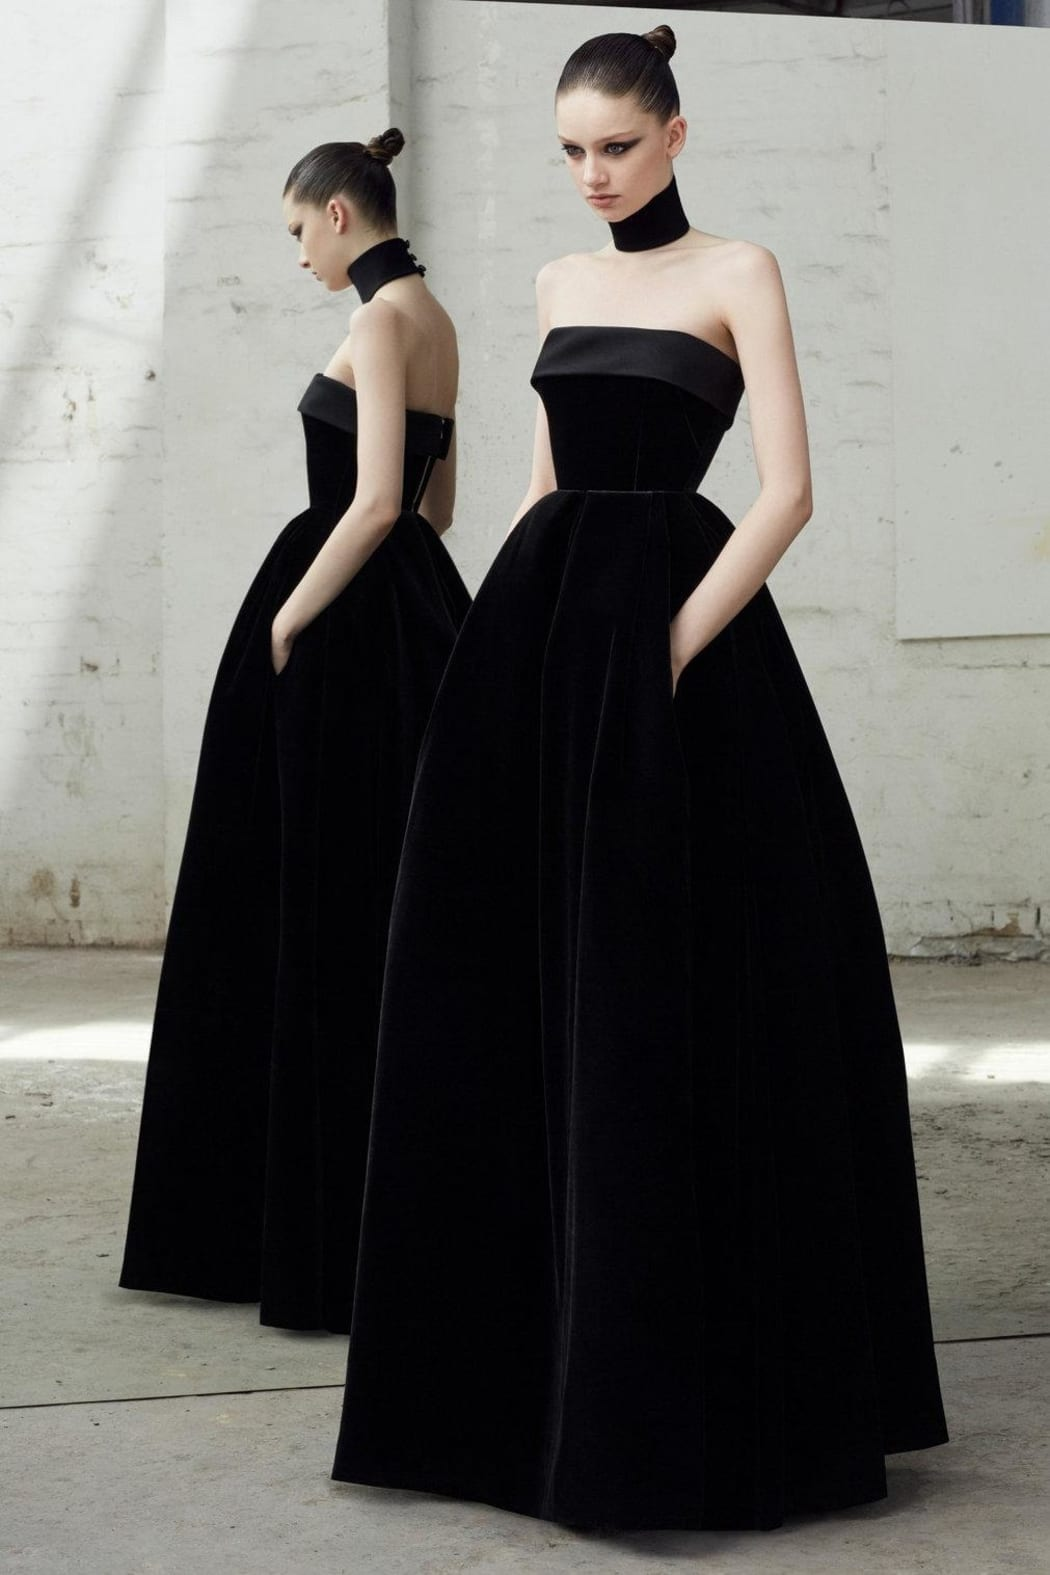 DISTRICT 5 BOUTIQUE Strapless Velvet Black Gown